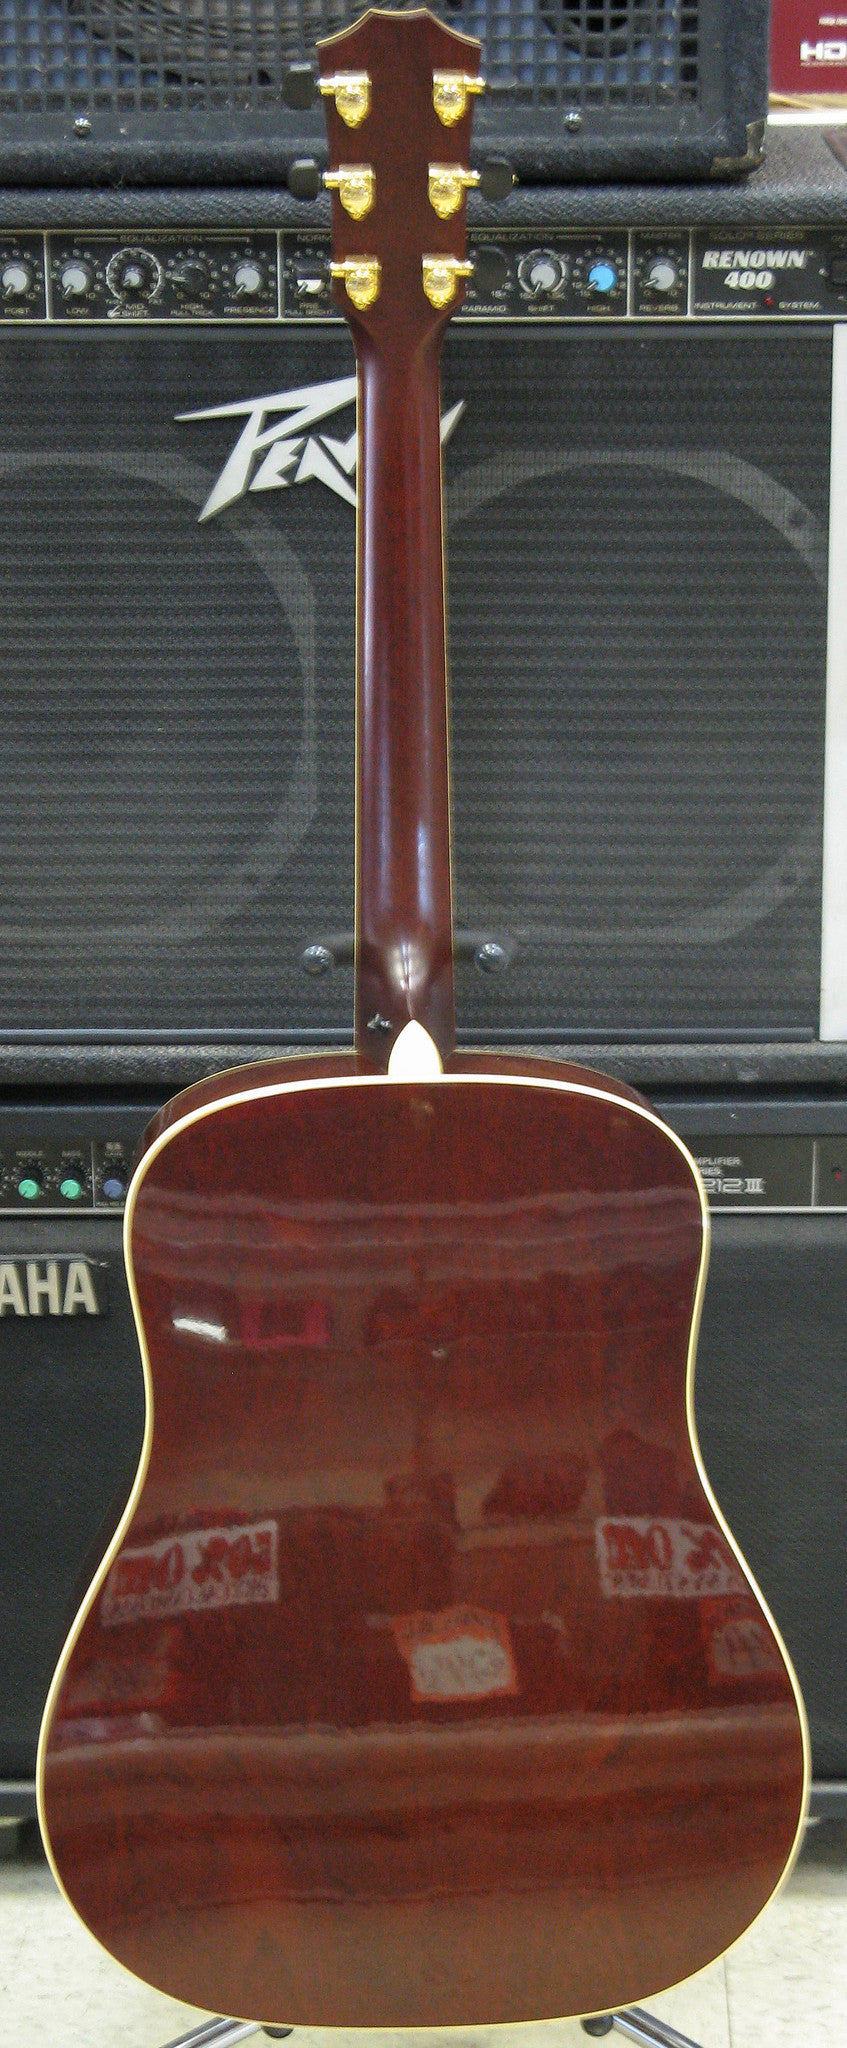 Taylor XXV-DR 25th Anniversary Acoustic Guitar